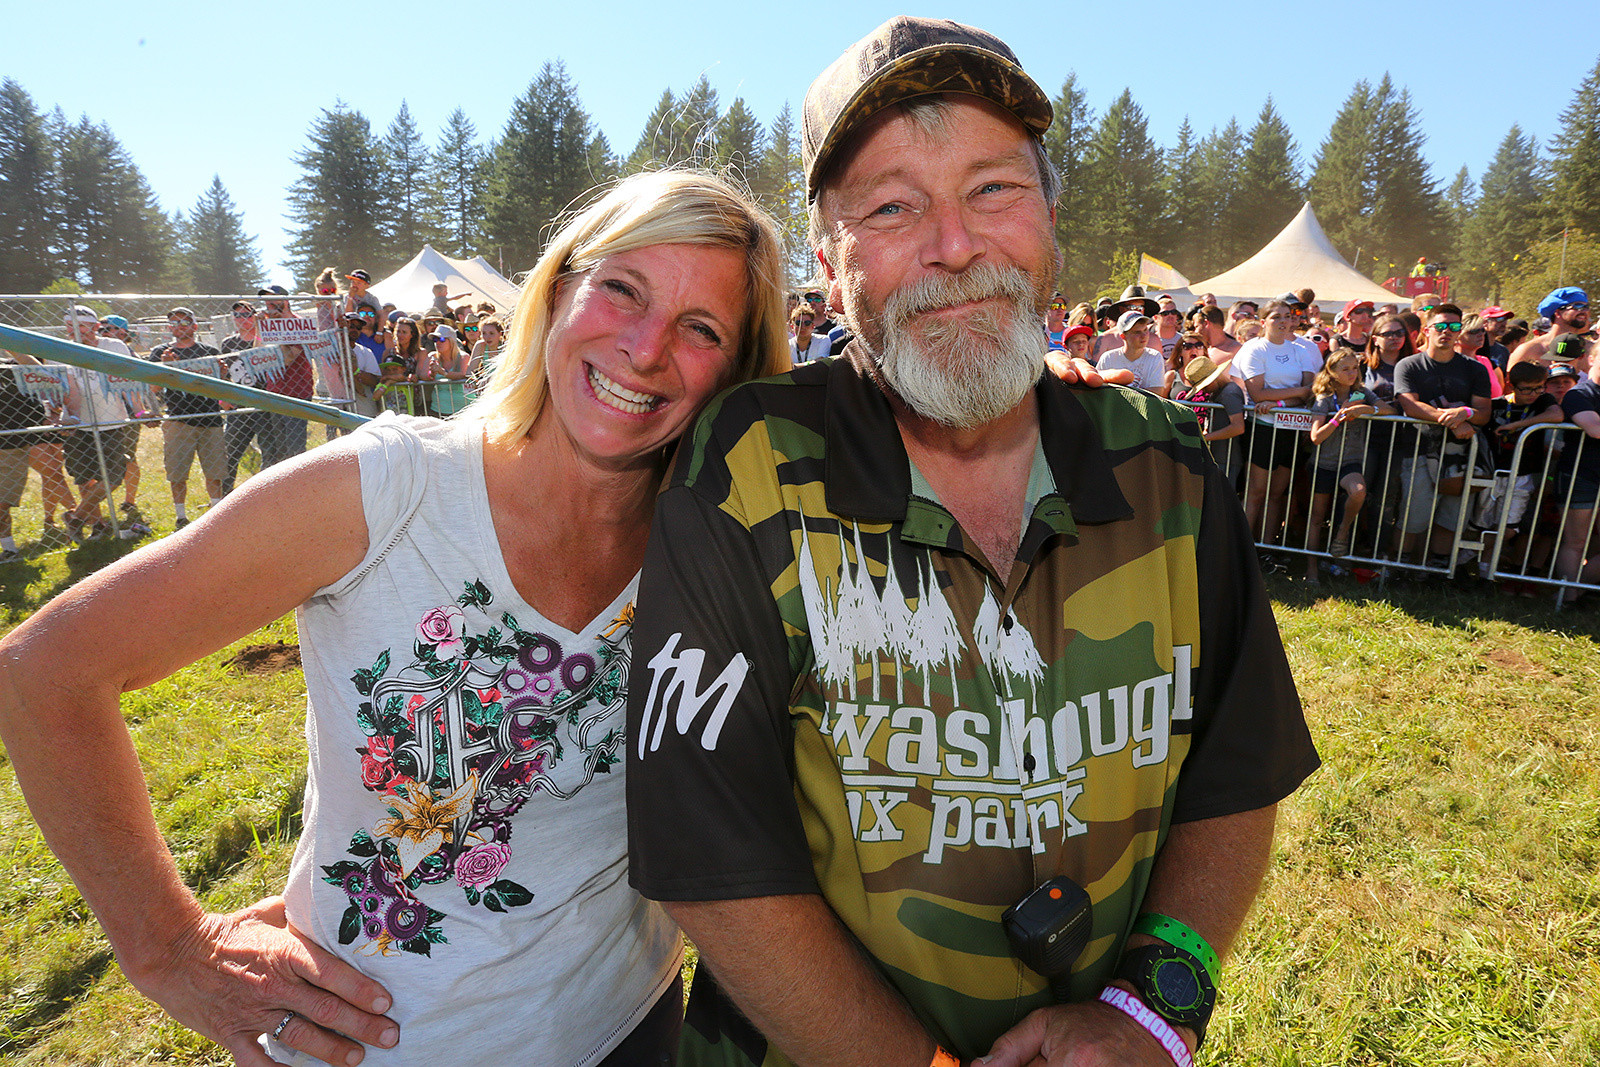 It's always good seeing the voice of Washougal, and his co-conspirator, Kristi.